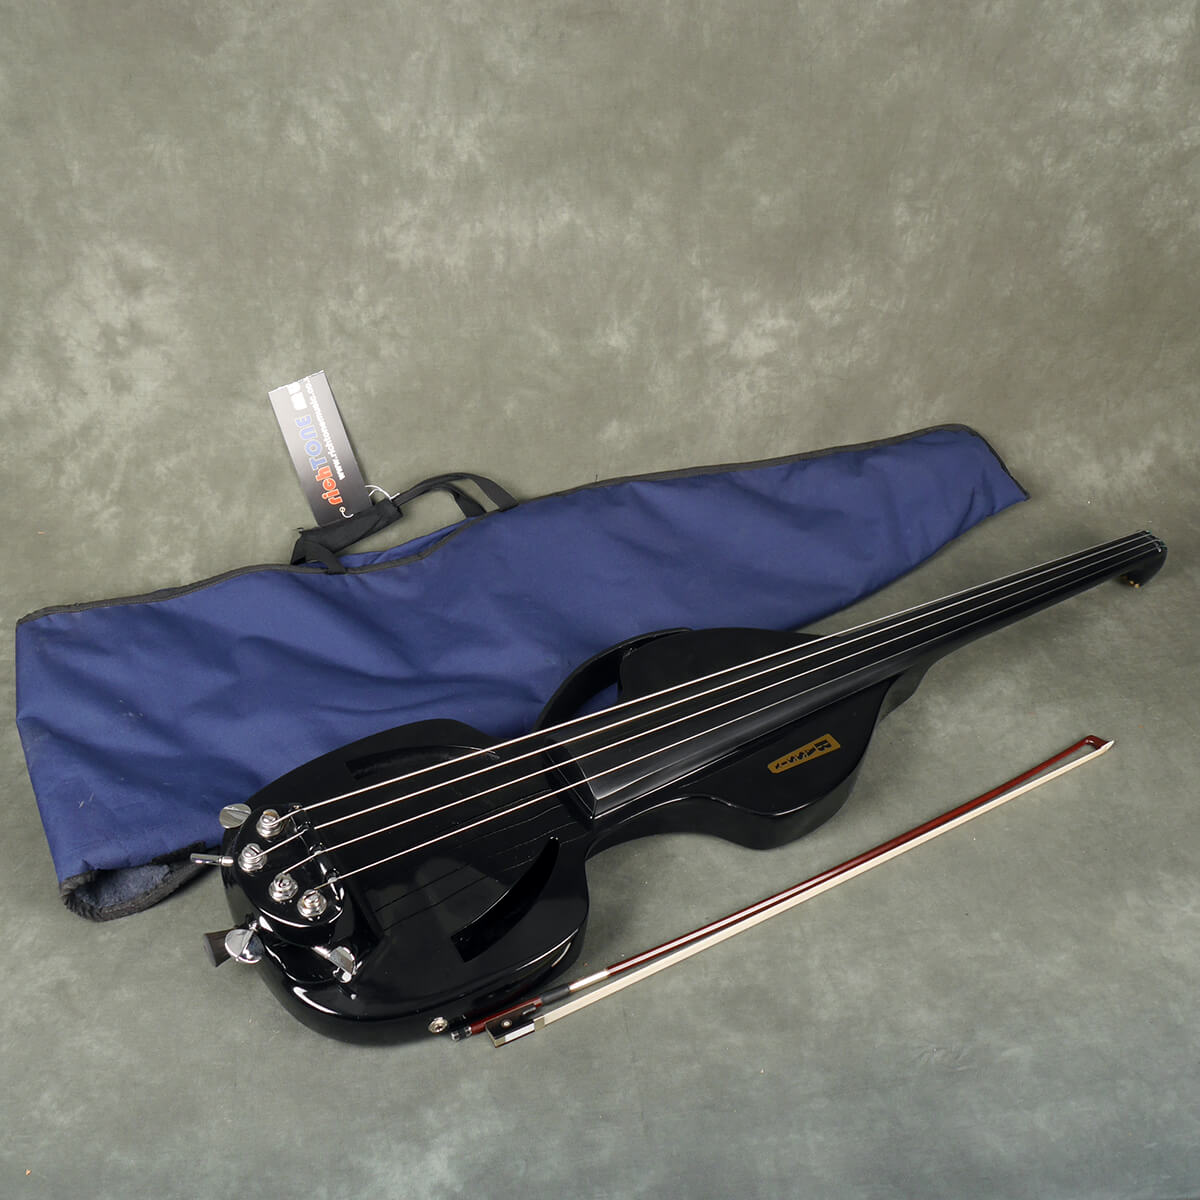 Bassix Composite Electric Double Bass - Black w/Gig Bag - 2nd Hand